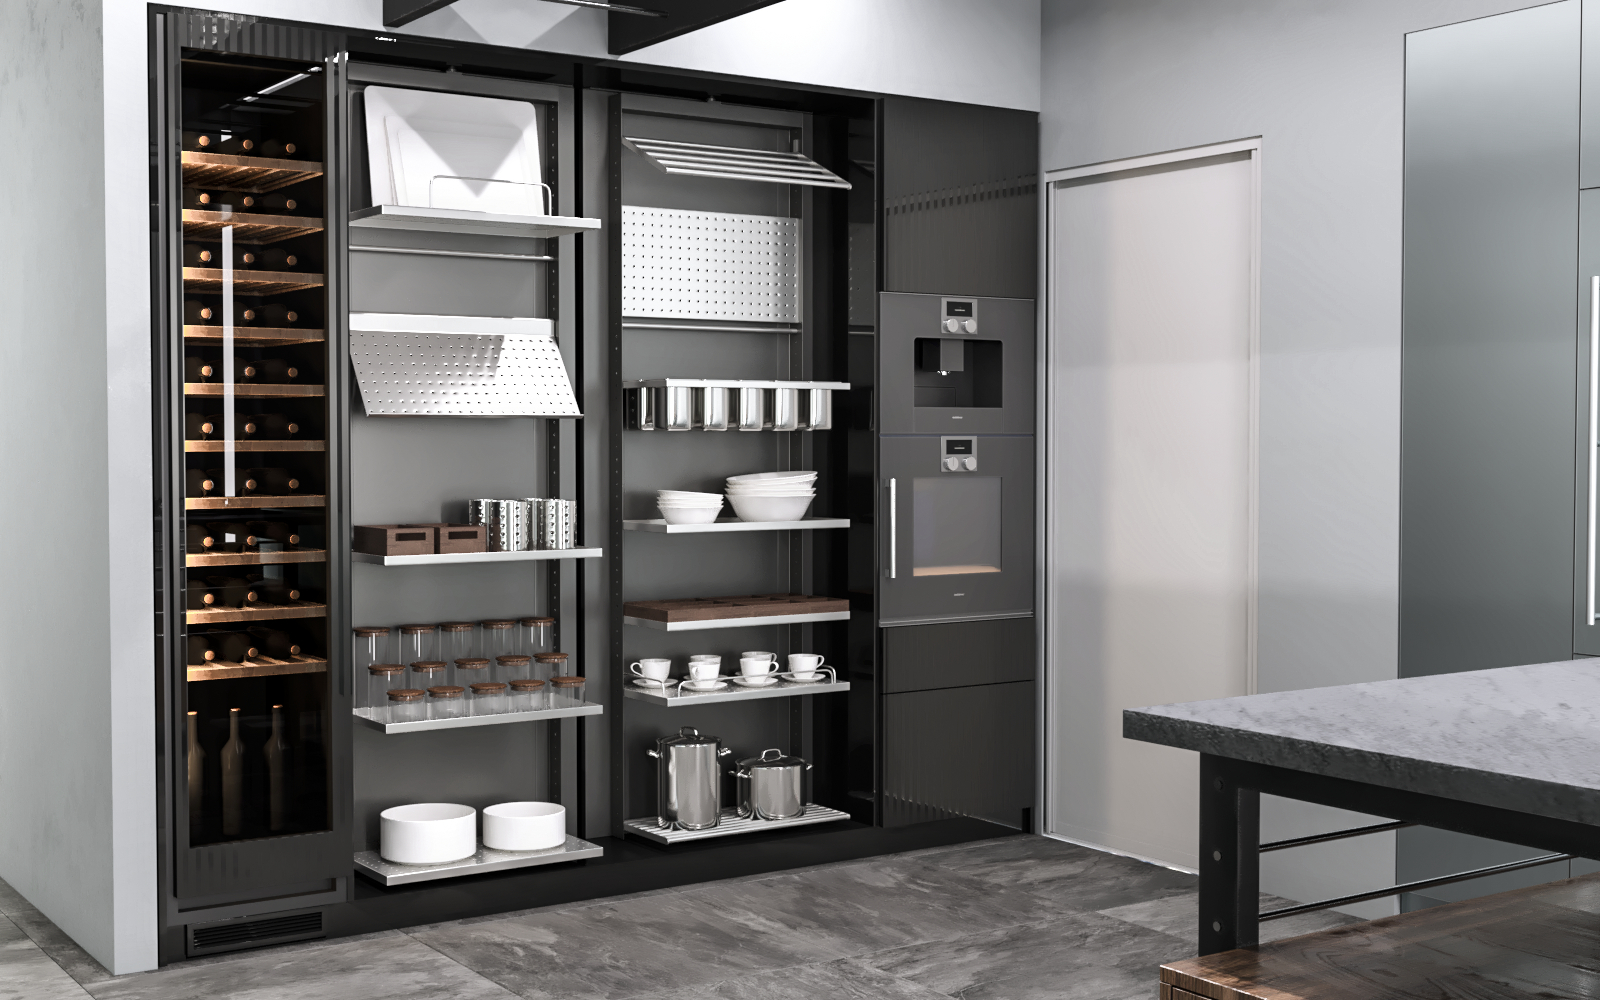 Eggersmann Works Kitchen Visualization in 3d max corona render image